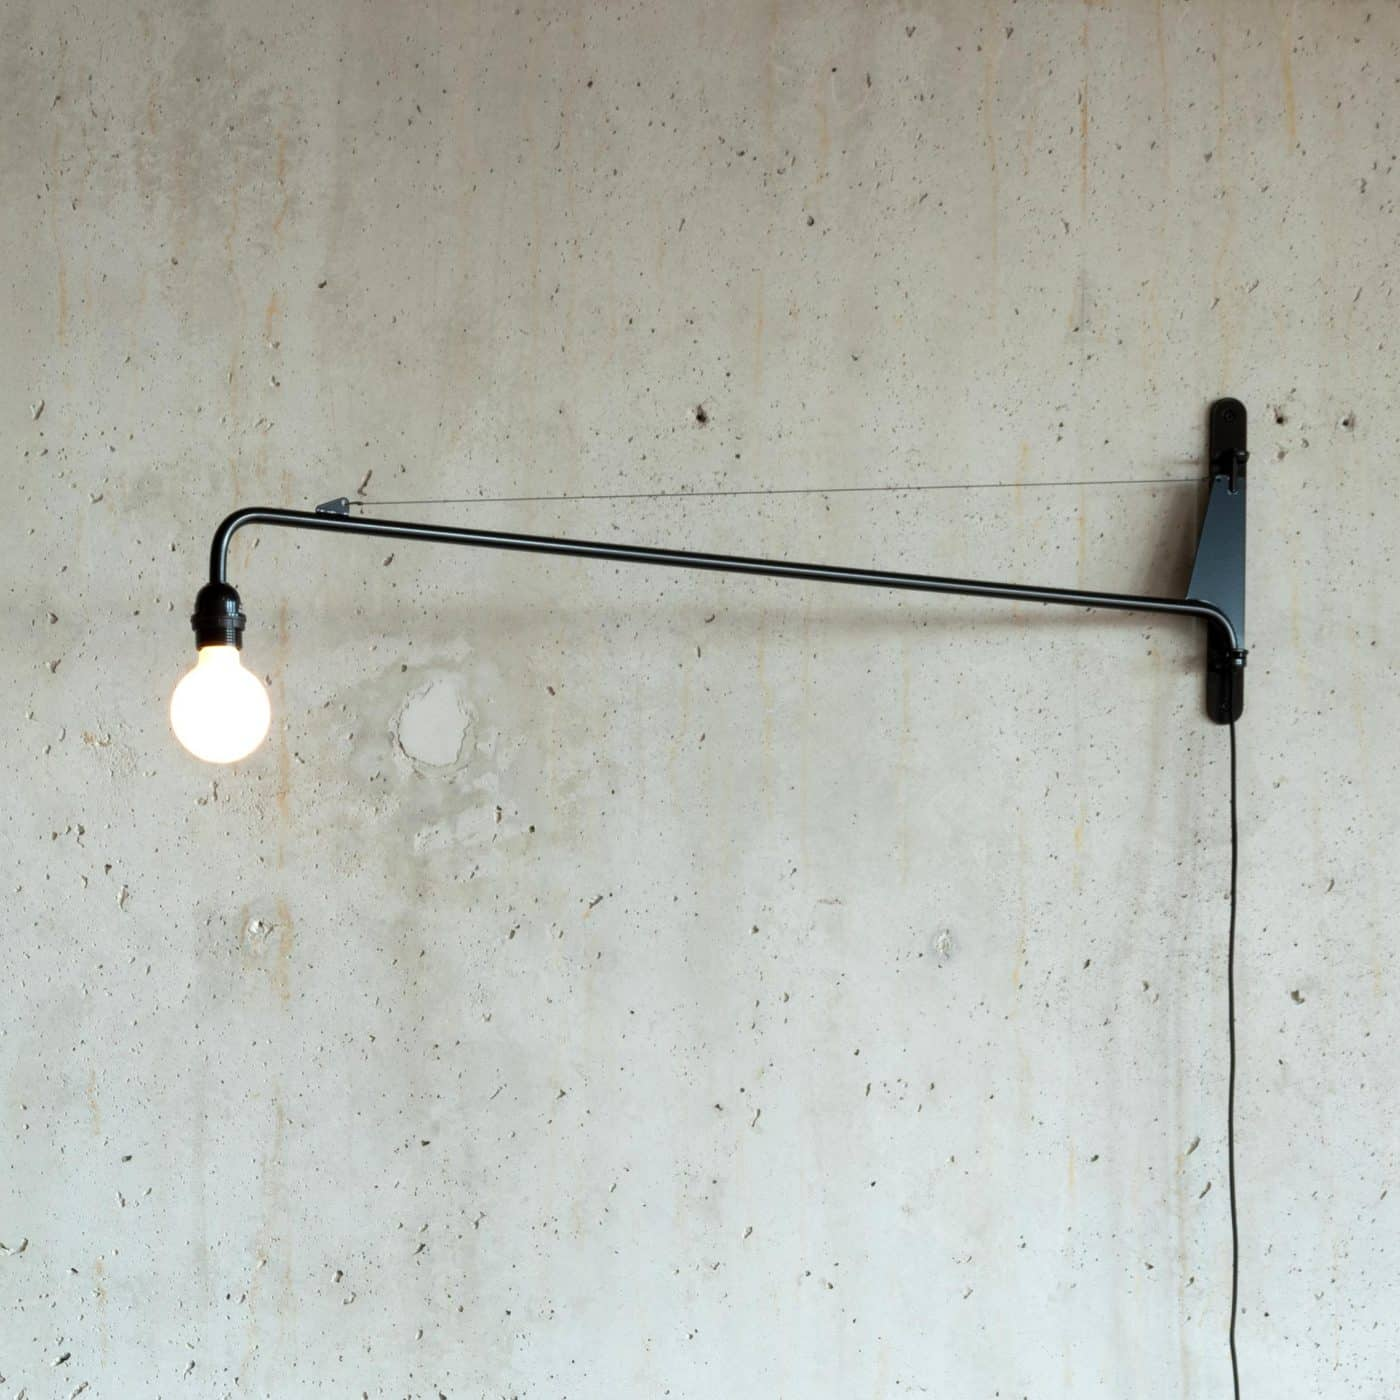 The Potence d'éclairage, or Swing Jib lamp, designed by Jean Prouvé